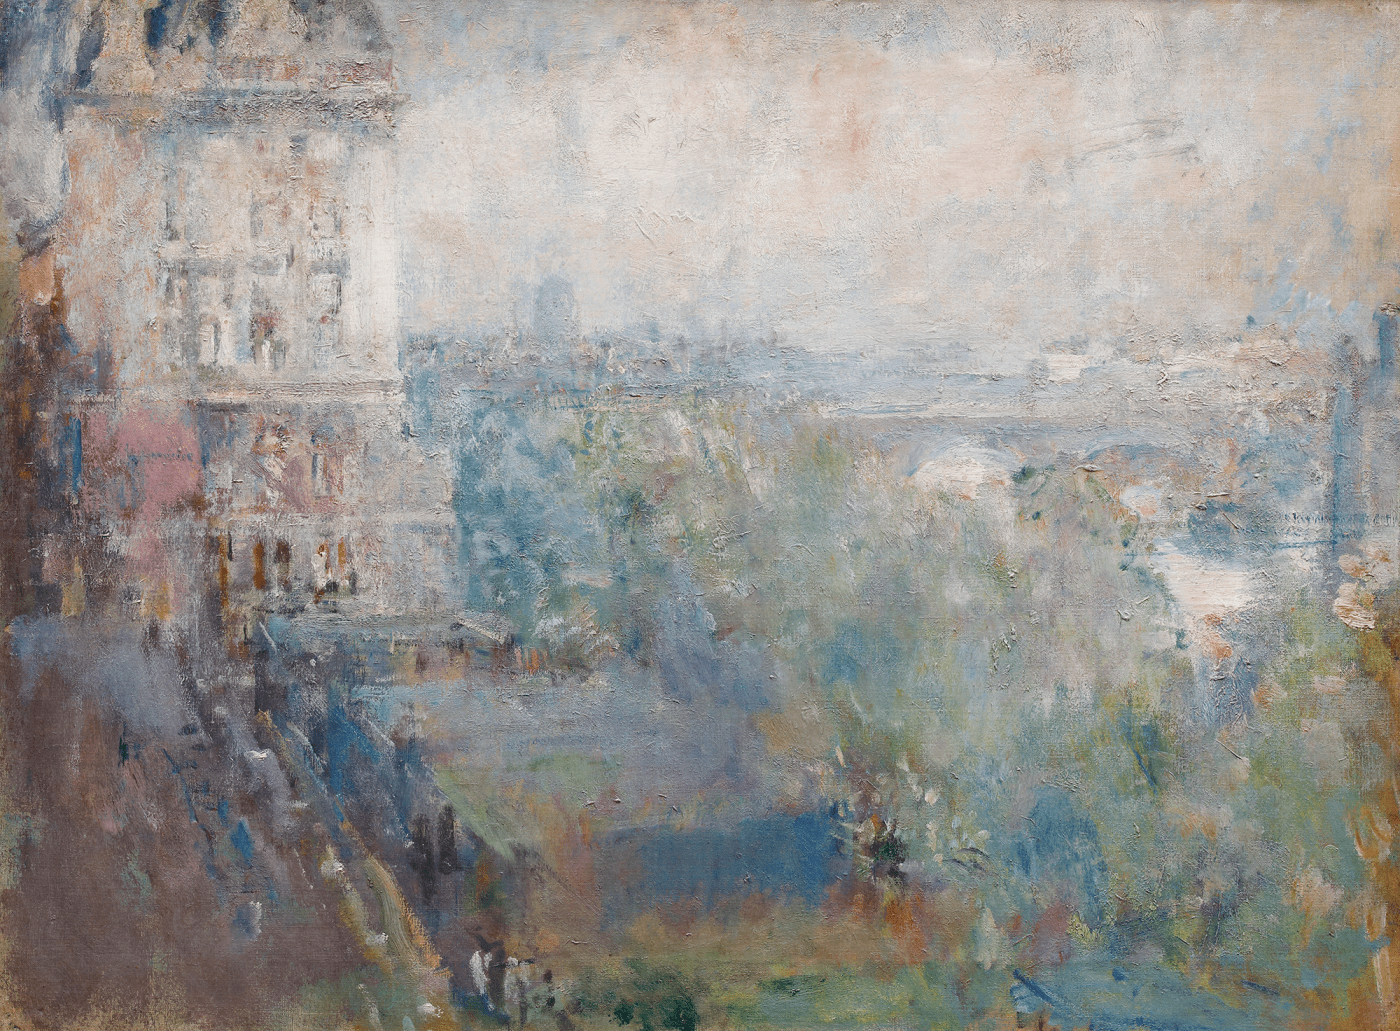 Ambrose McEvoy Thames from the Adelphi